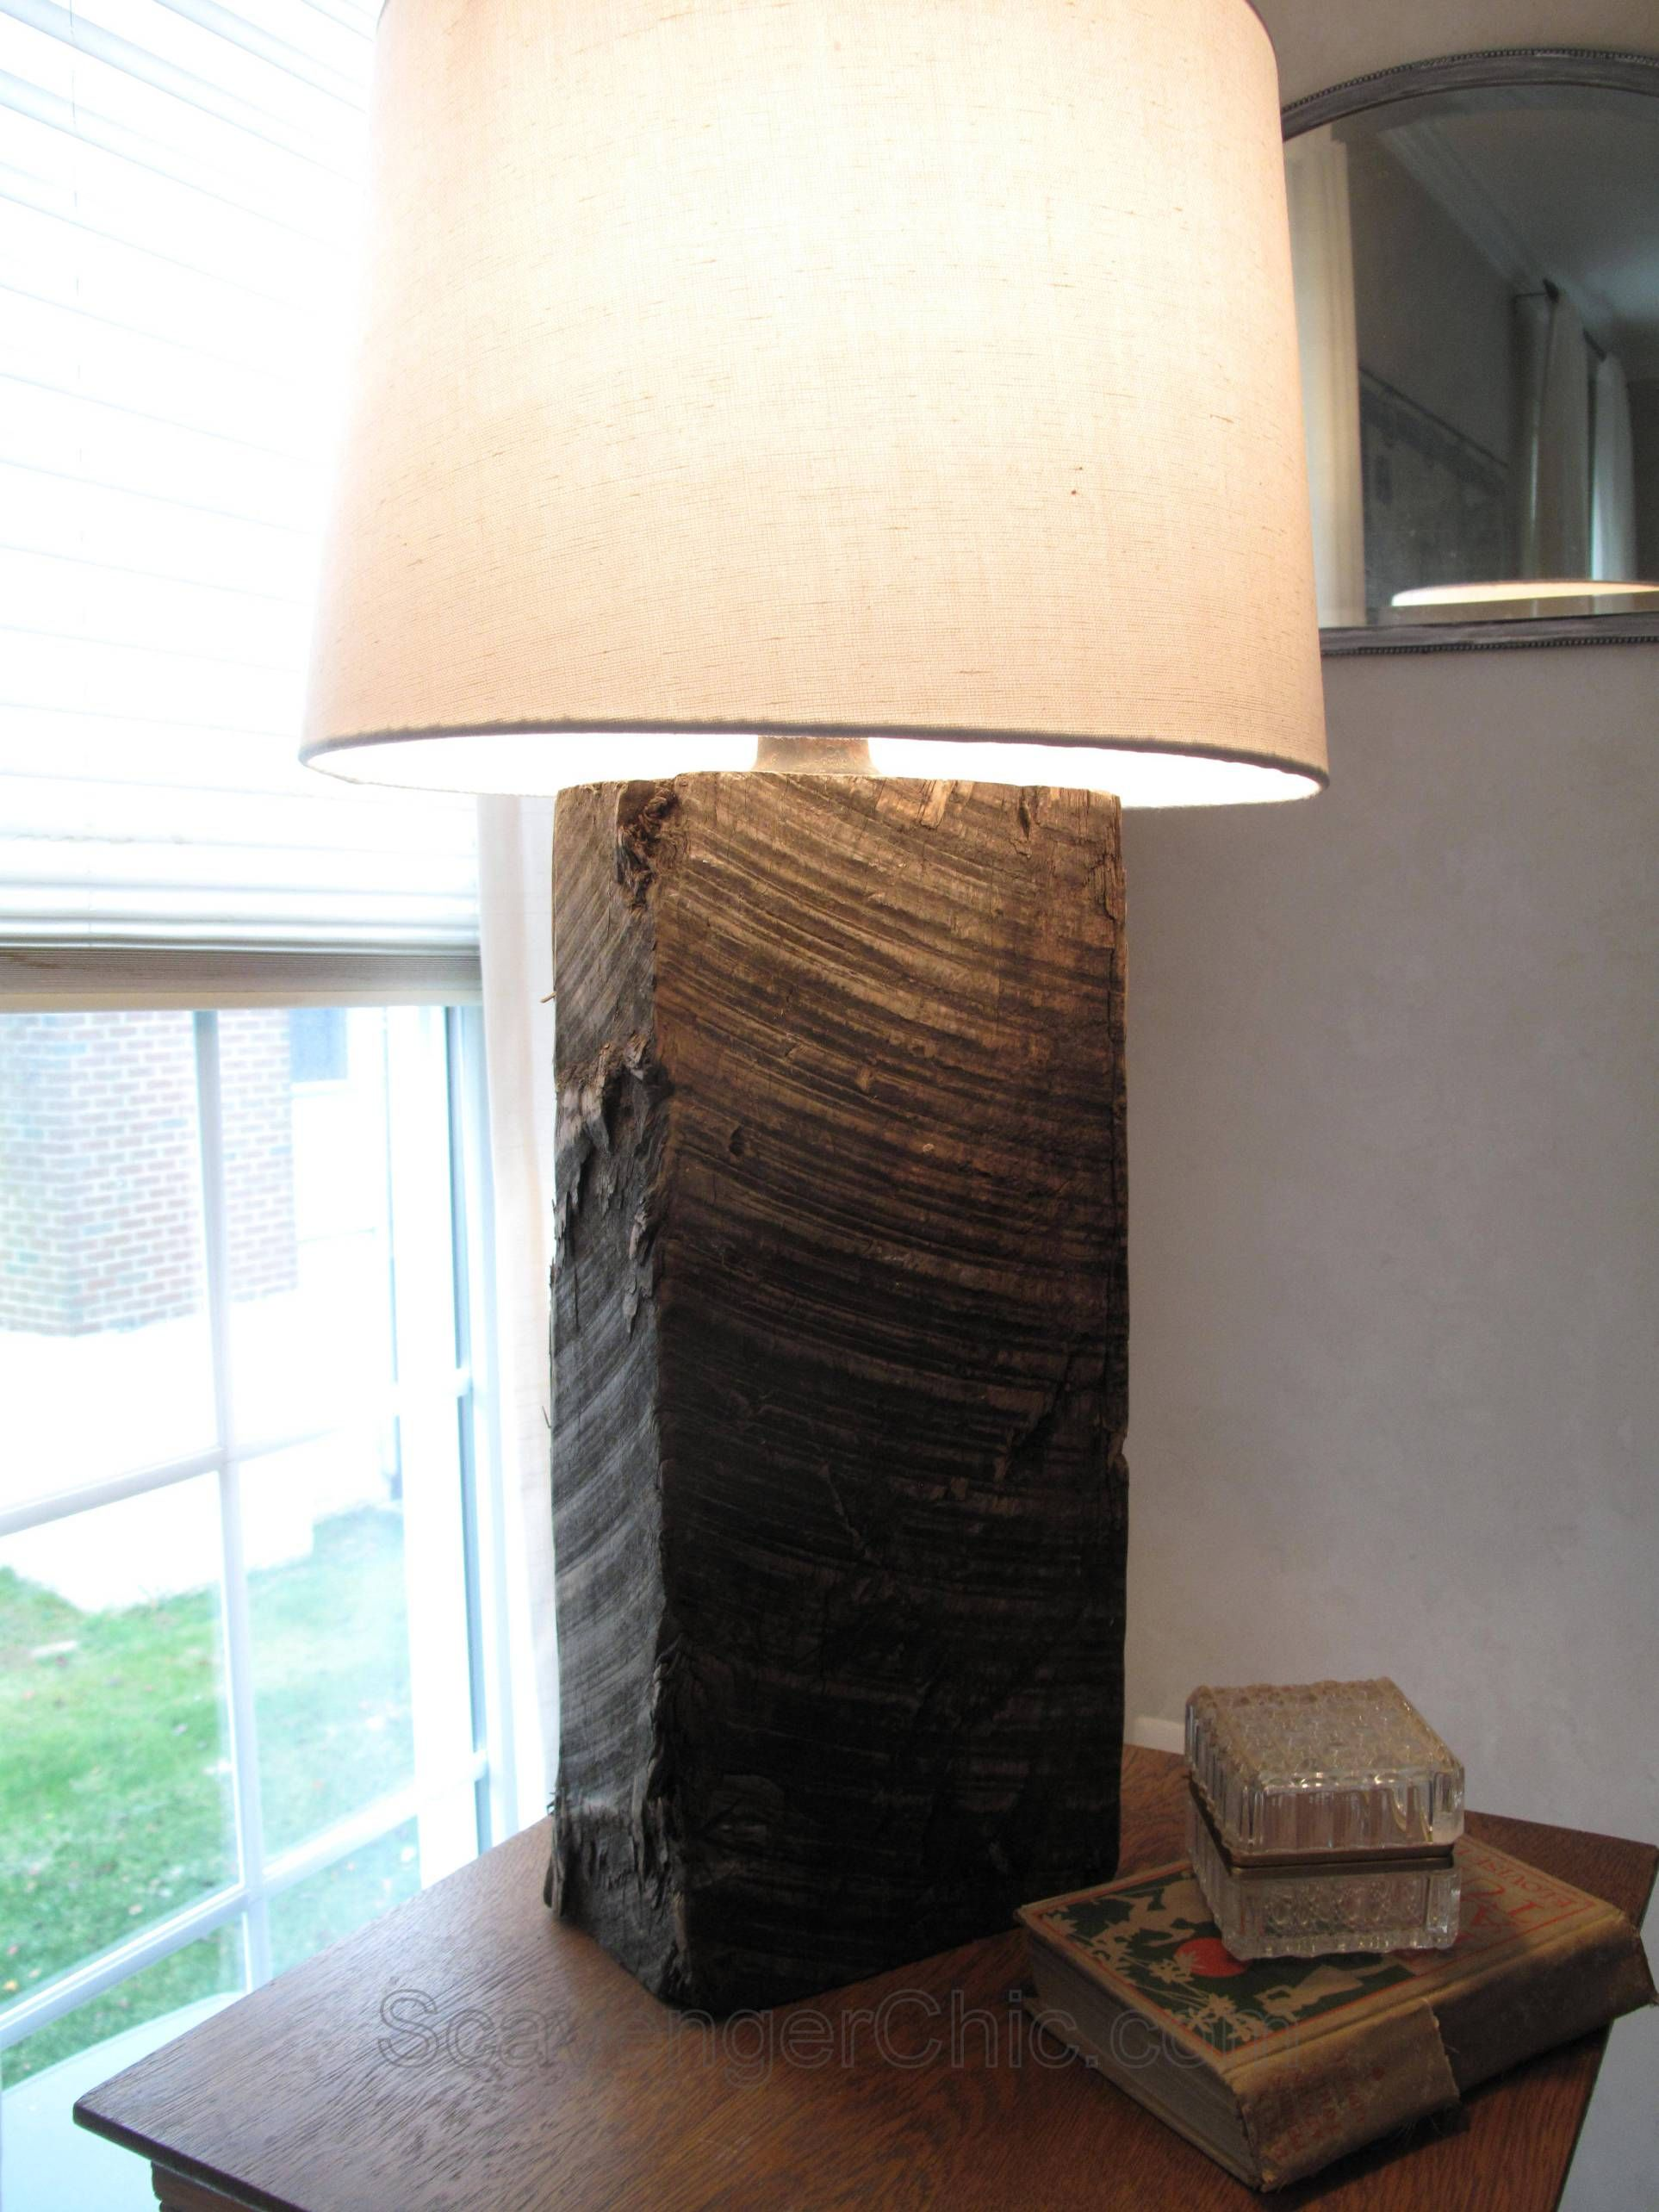 railroad tie lamp diy homemade lamp repurposed lamp recycled railroad tie lamp diy homemade lamp repurposed lamp recycled lamp diy lamps